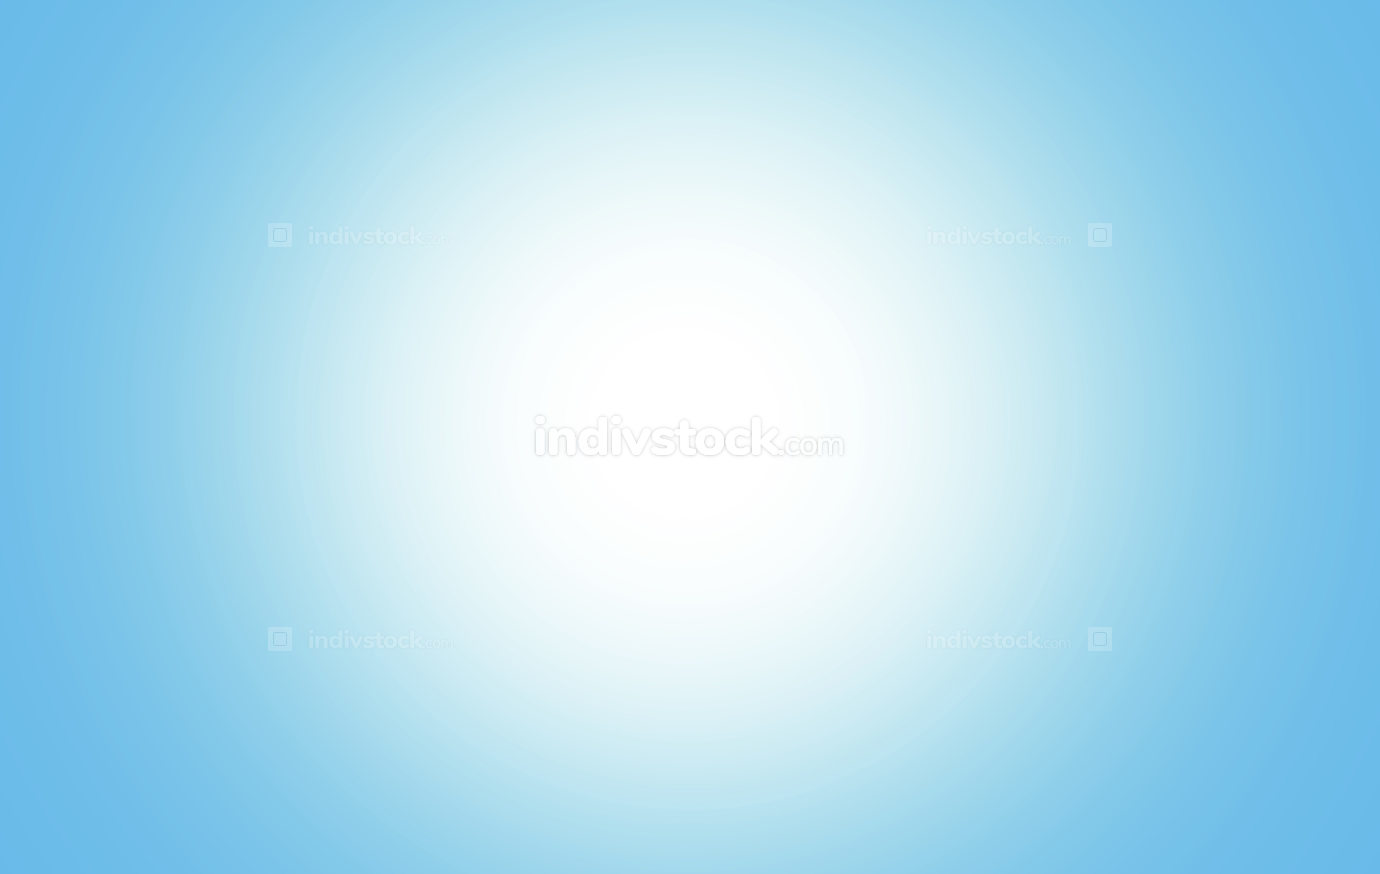 free download: light blue blurred background illustration